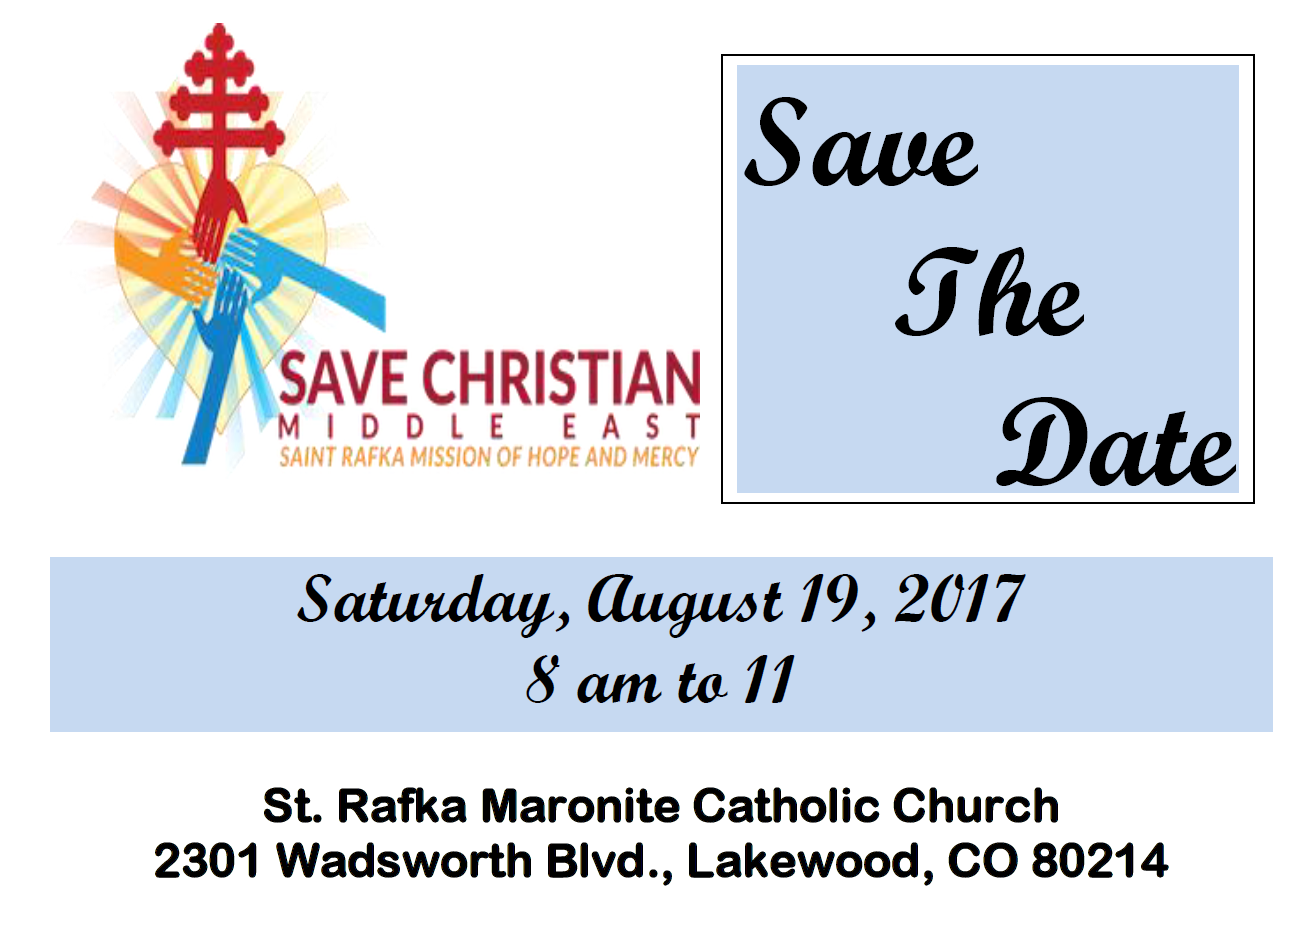 The 3rd Annual Ecumenical Prayer Breakfast